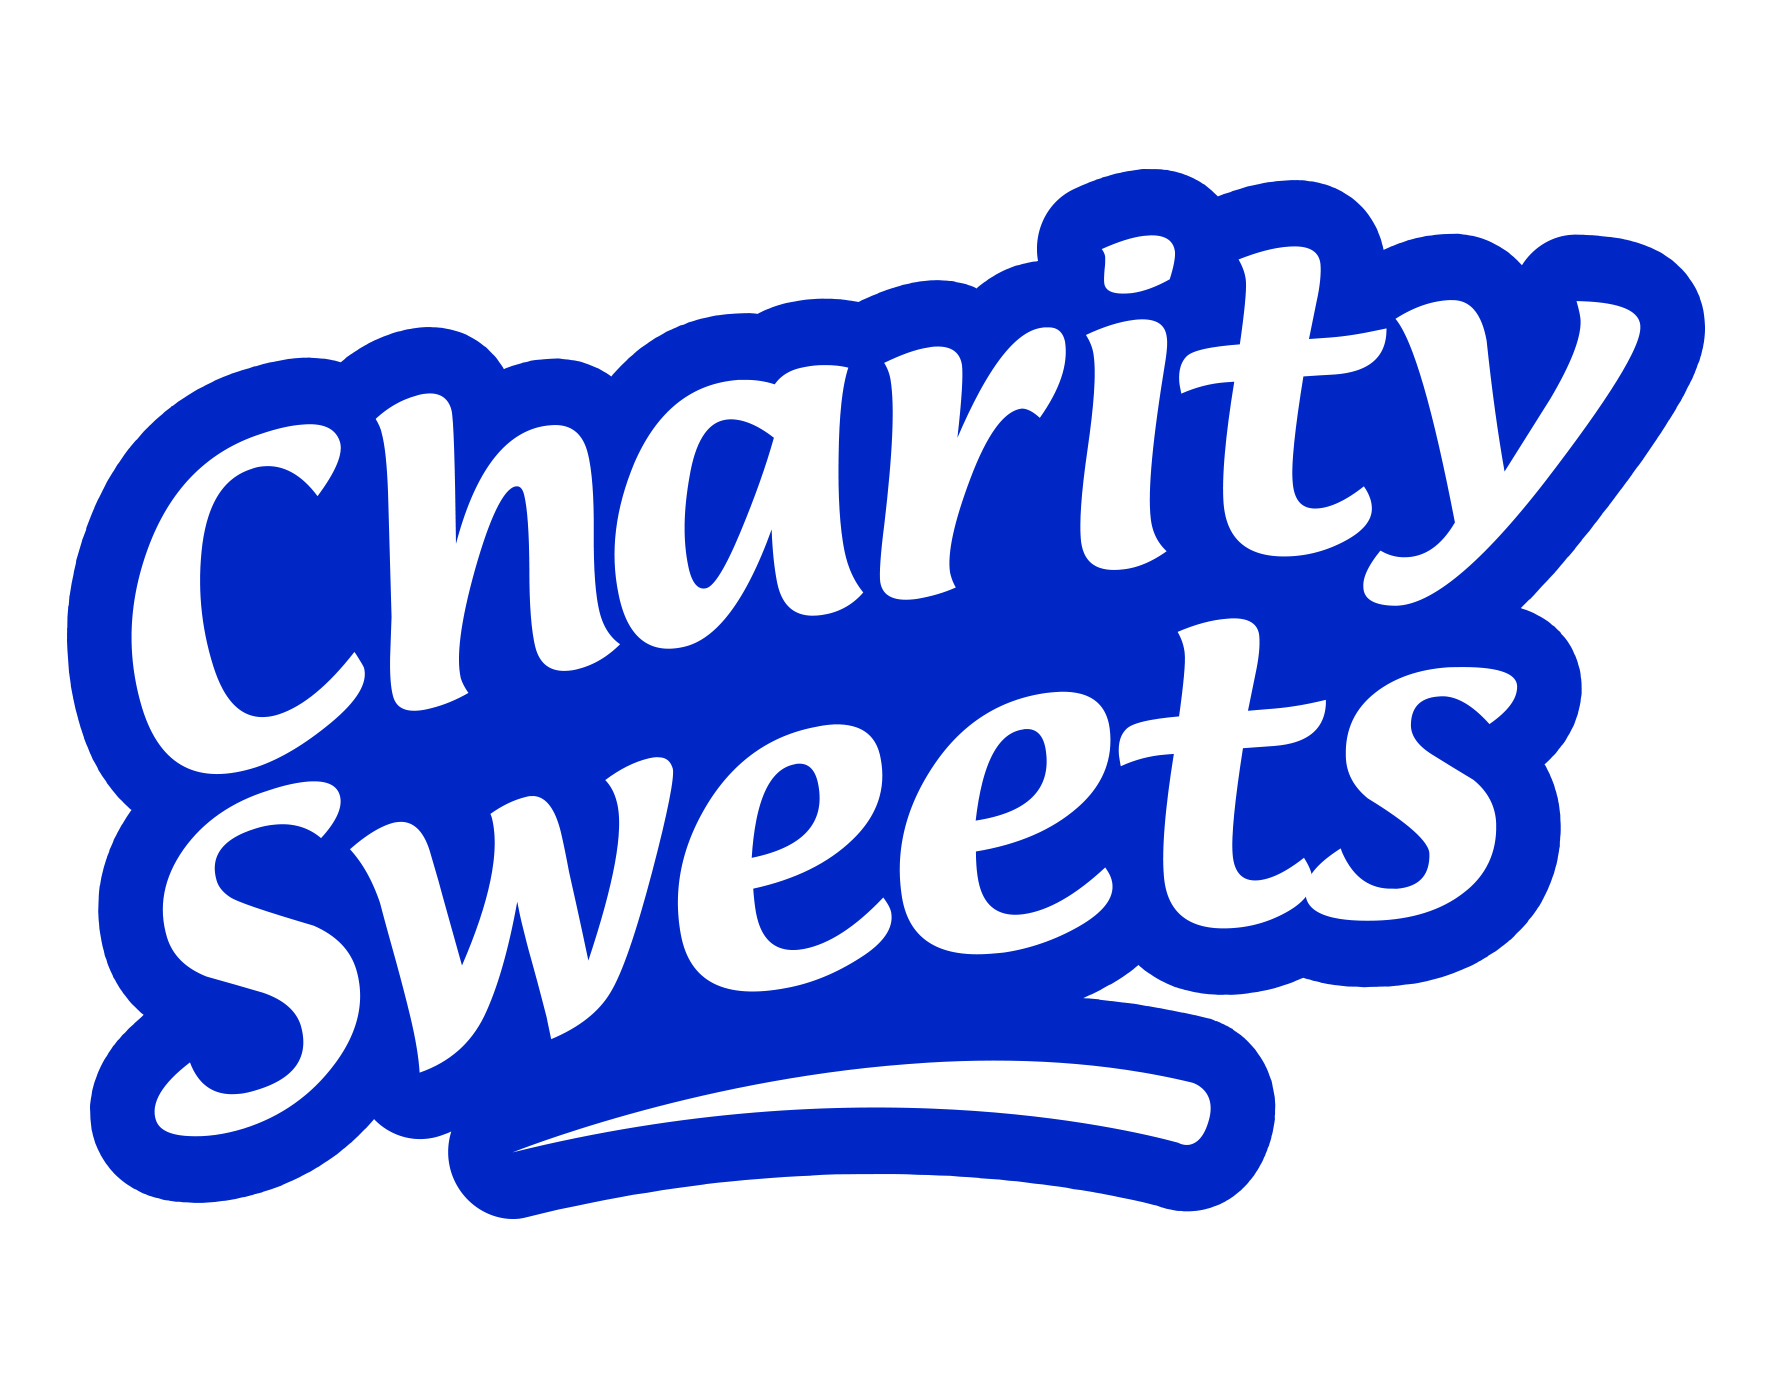 charity sweets logo with underscore.jpg